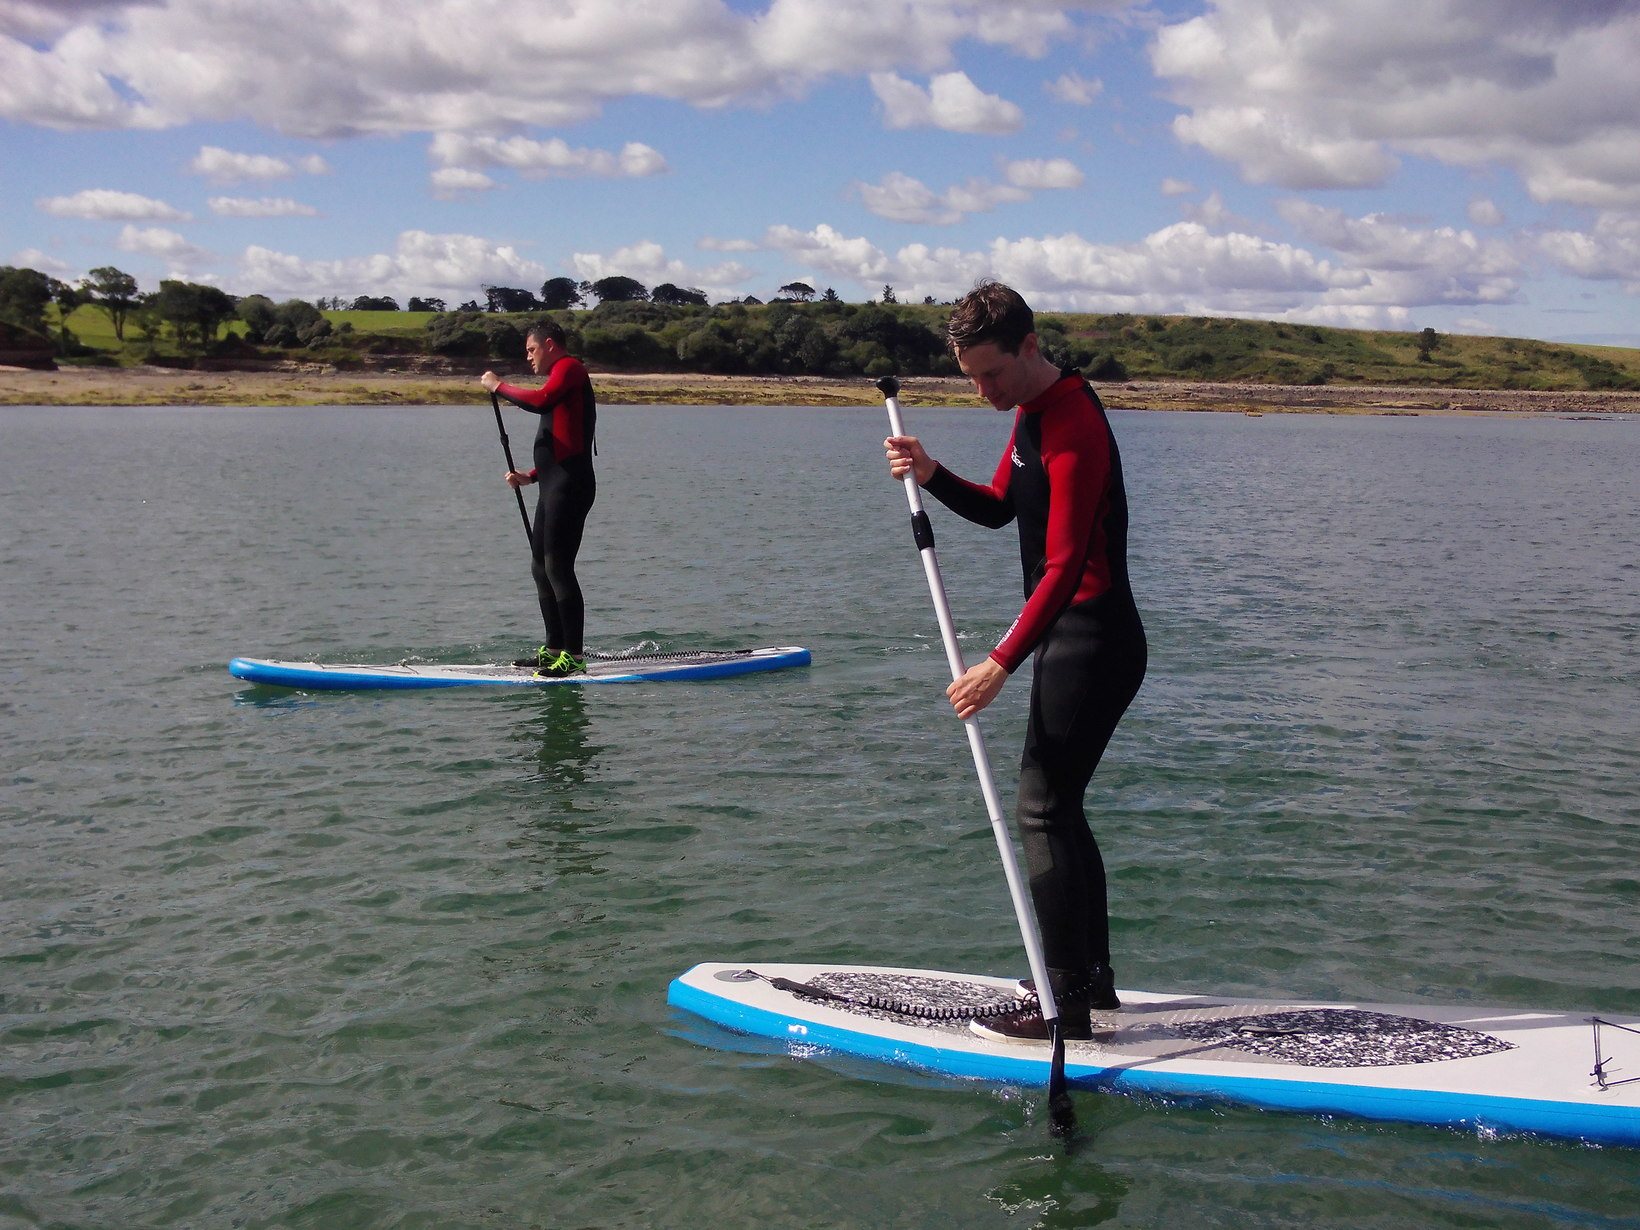 Canoeing Kayaking and Stand-up Paddle Boarding on The Coquet Estuary at Amble